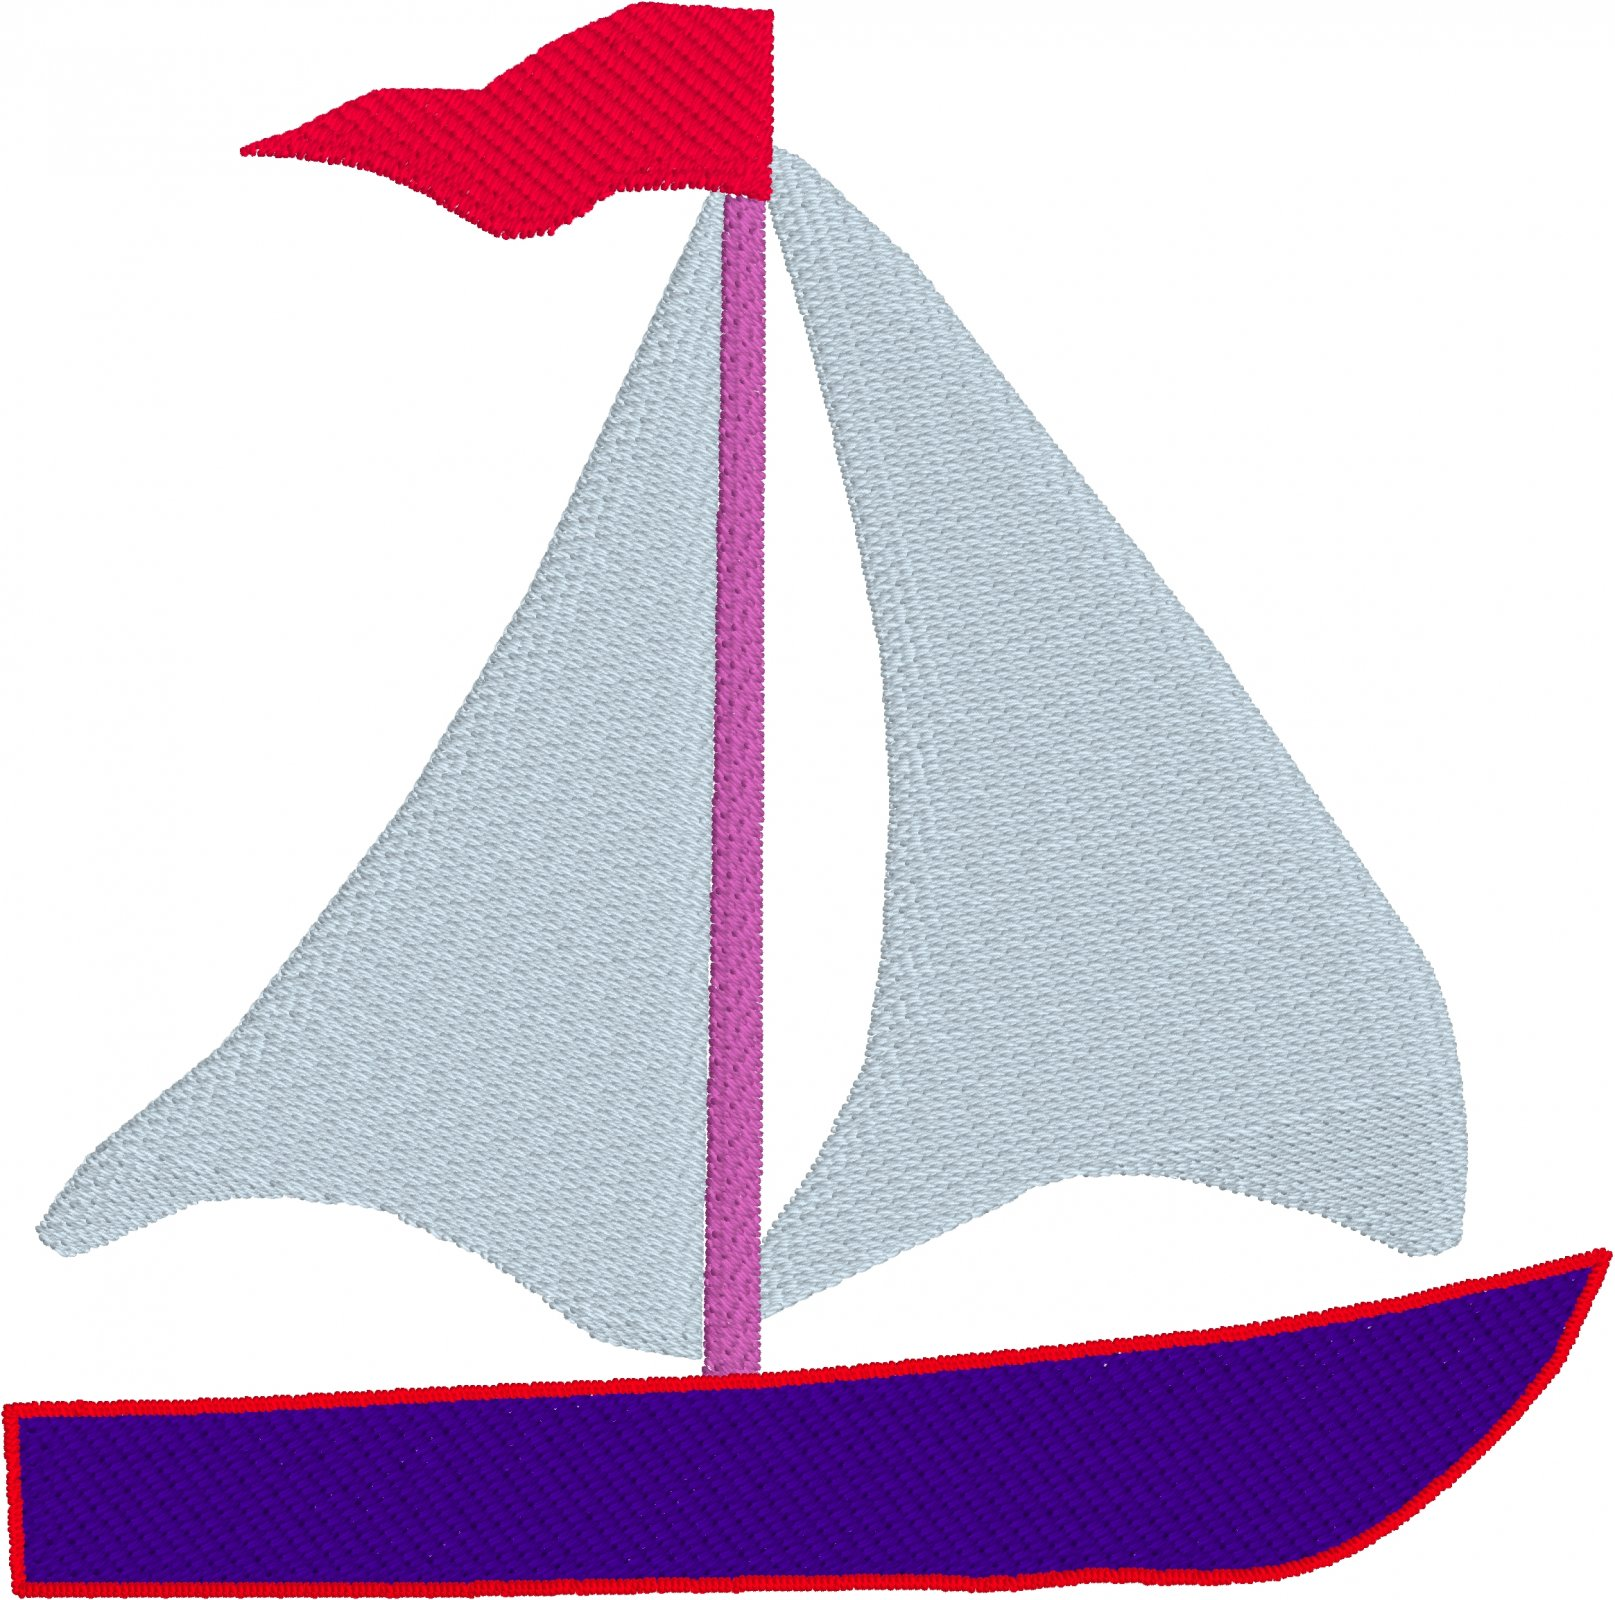 Row by Row 2017 Virginia Small Sailboat Embroidery File